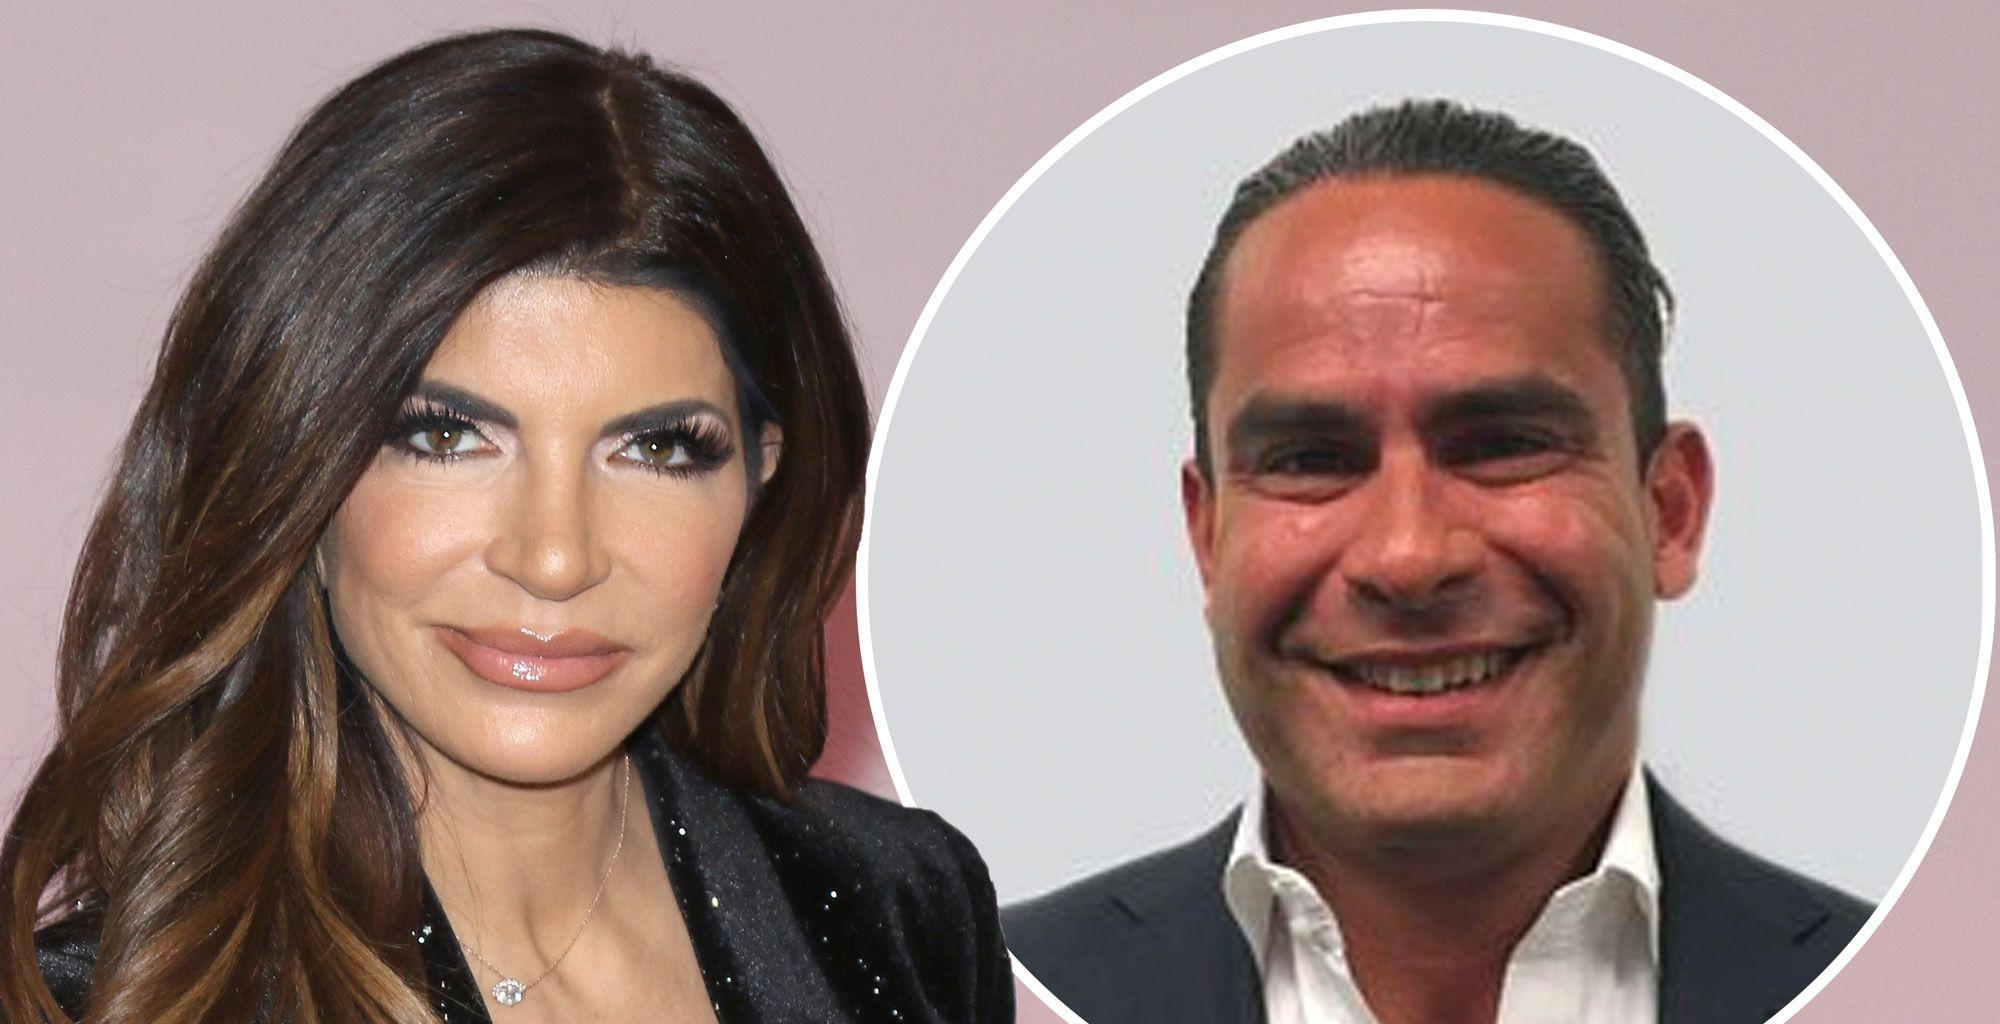 Teresa Giudice Thinks Her New BF Is The 'Total Package' - Here's Why He's 'Perfect For Her!'